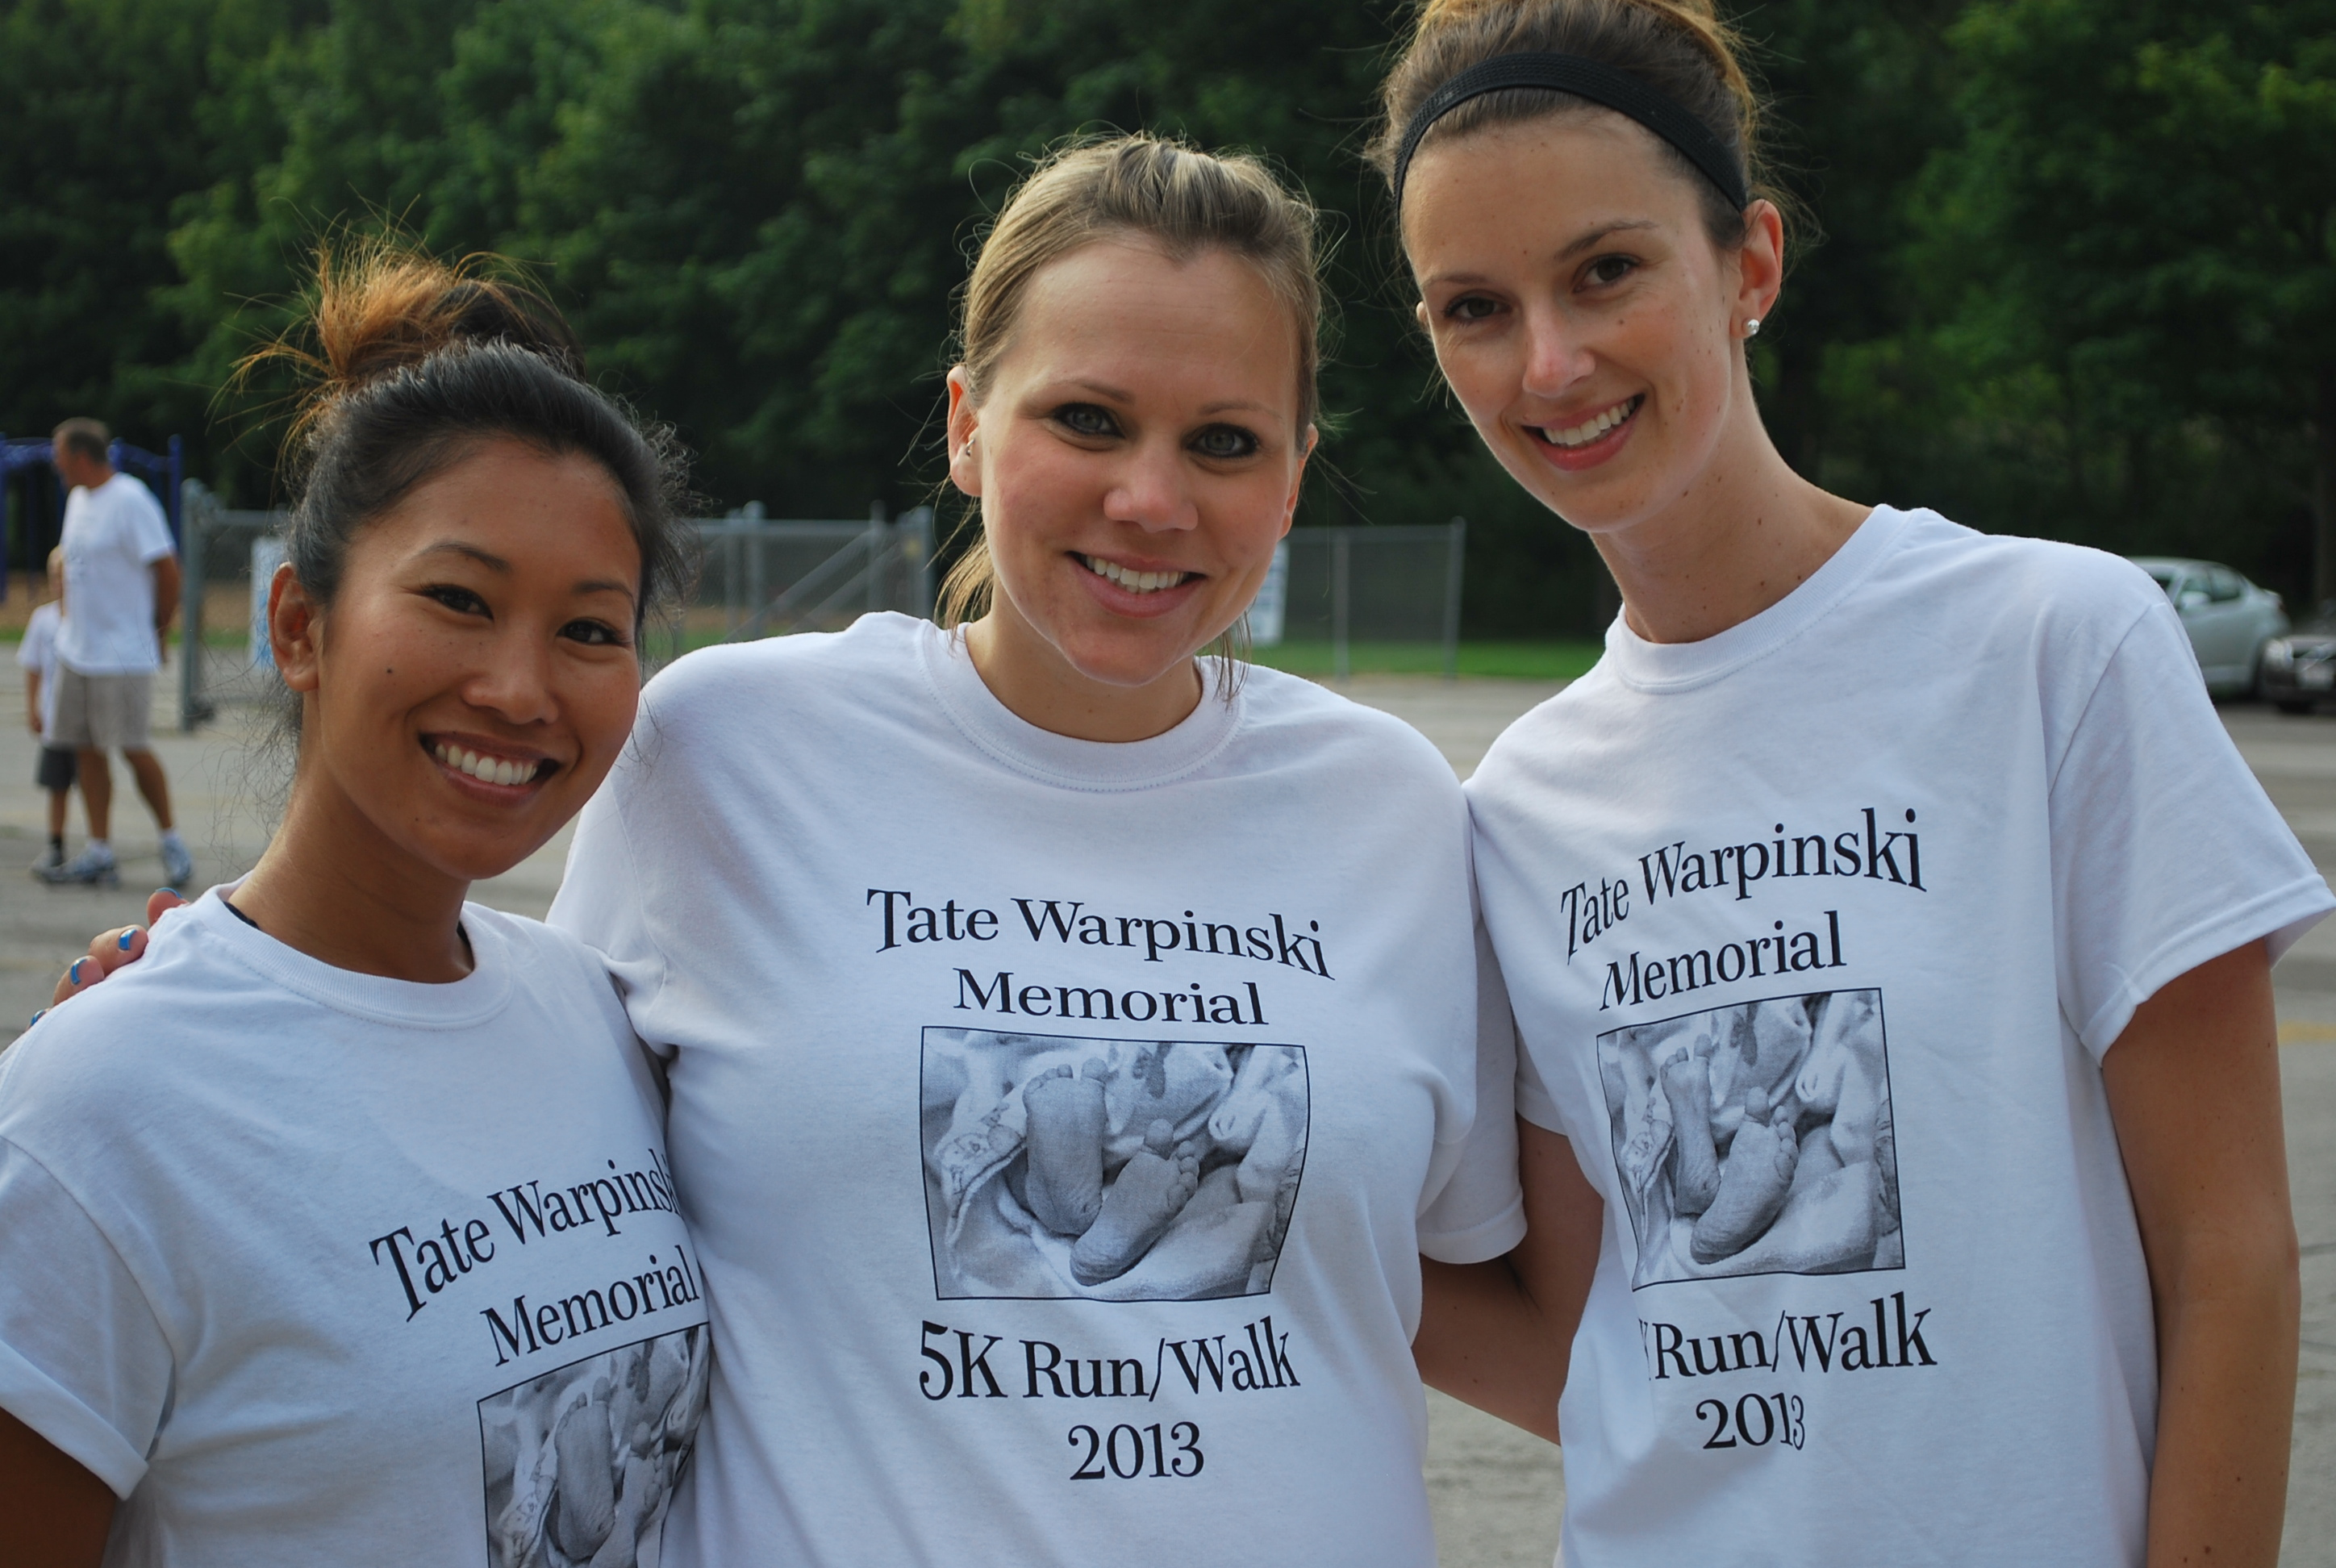 Custom T-Shirts for Tjw Memorial Run - Shirt Design Ideas